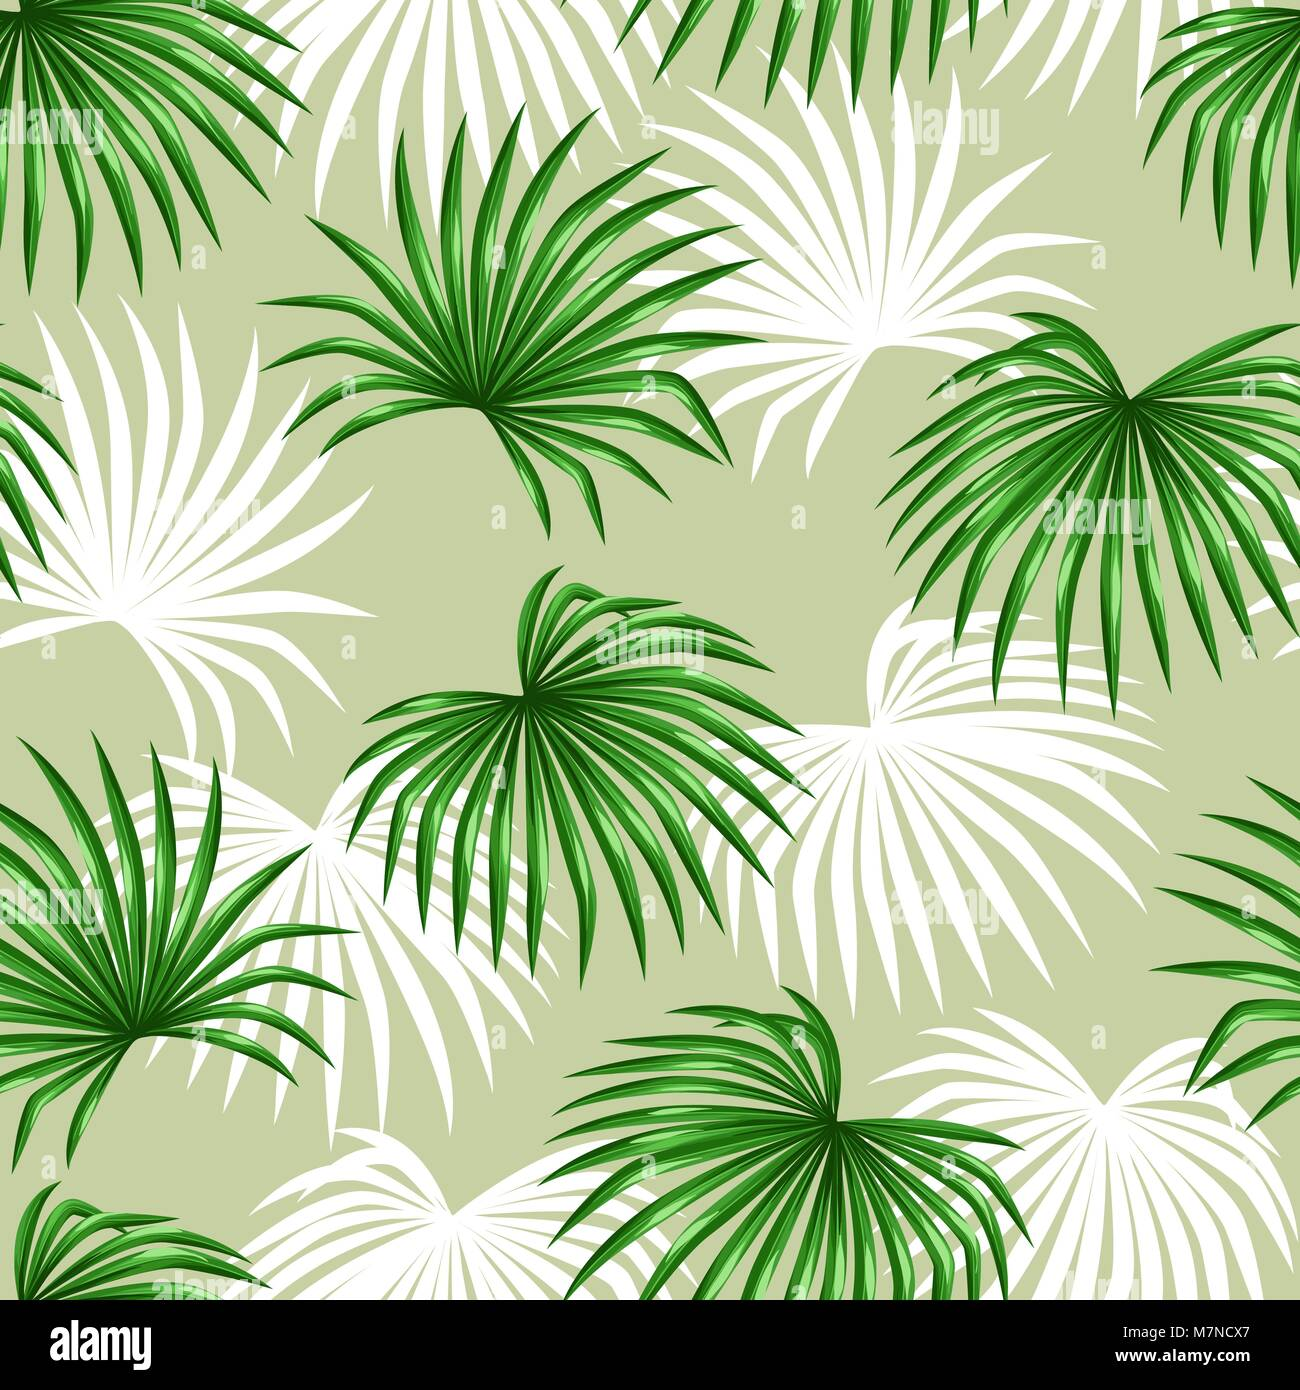 Seamless Pattern With Palms Leaves Decorative Image Tropical Leaf Of Stock Vector Image Art Alamy Download this free vector about collection of tropical leaves, and discover more than 10 million professional graphic resources on freepik. https www alamy com stock photo seamless pattern with palms leaves decorative image tropical leaf 176877407 html